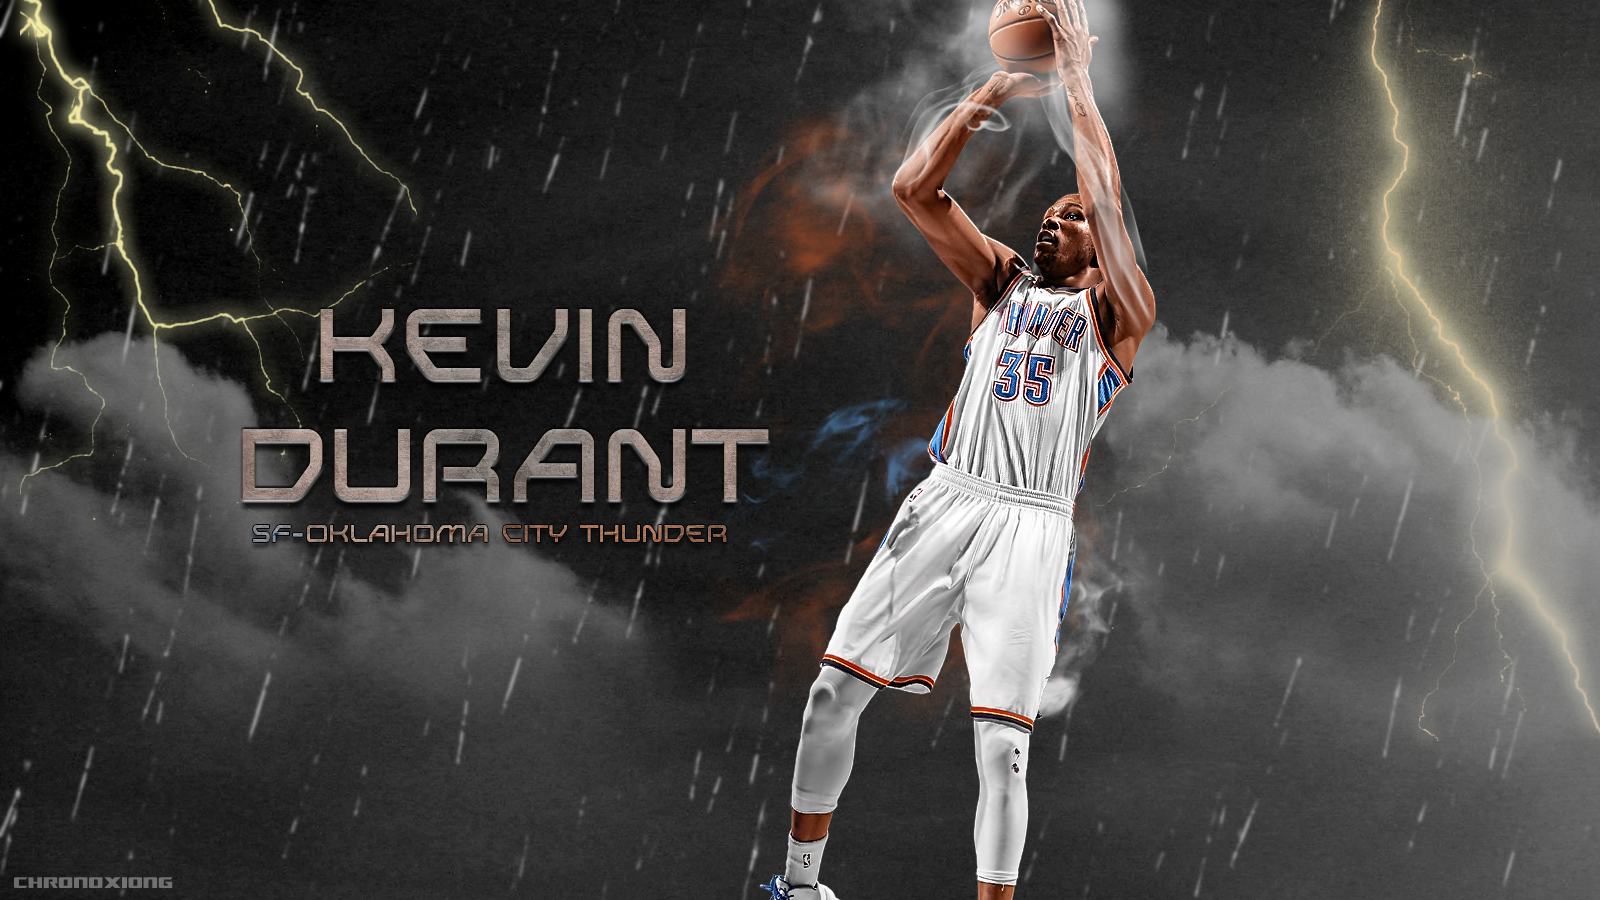 49] Kd Wallpaper 2015 on WallpaperSafari 1600x900